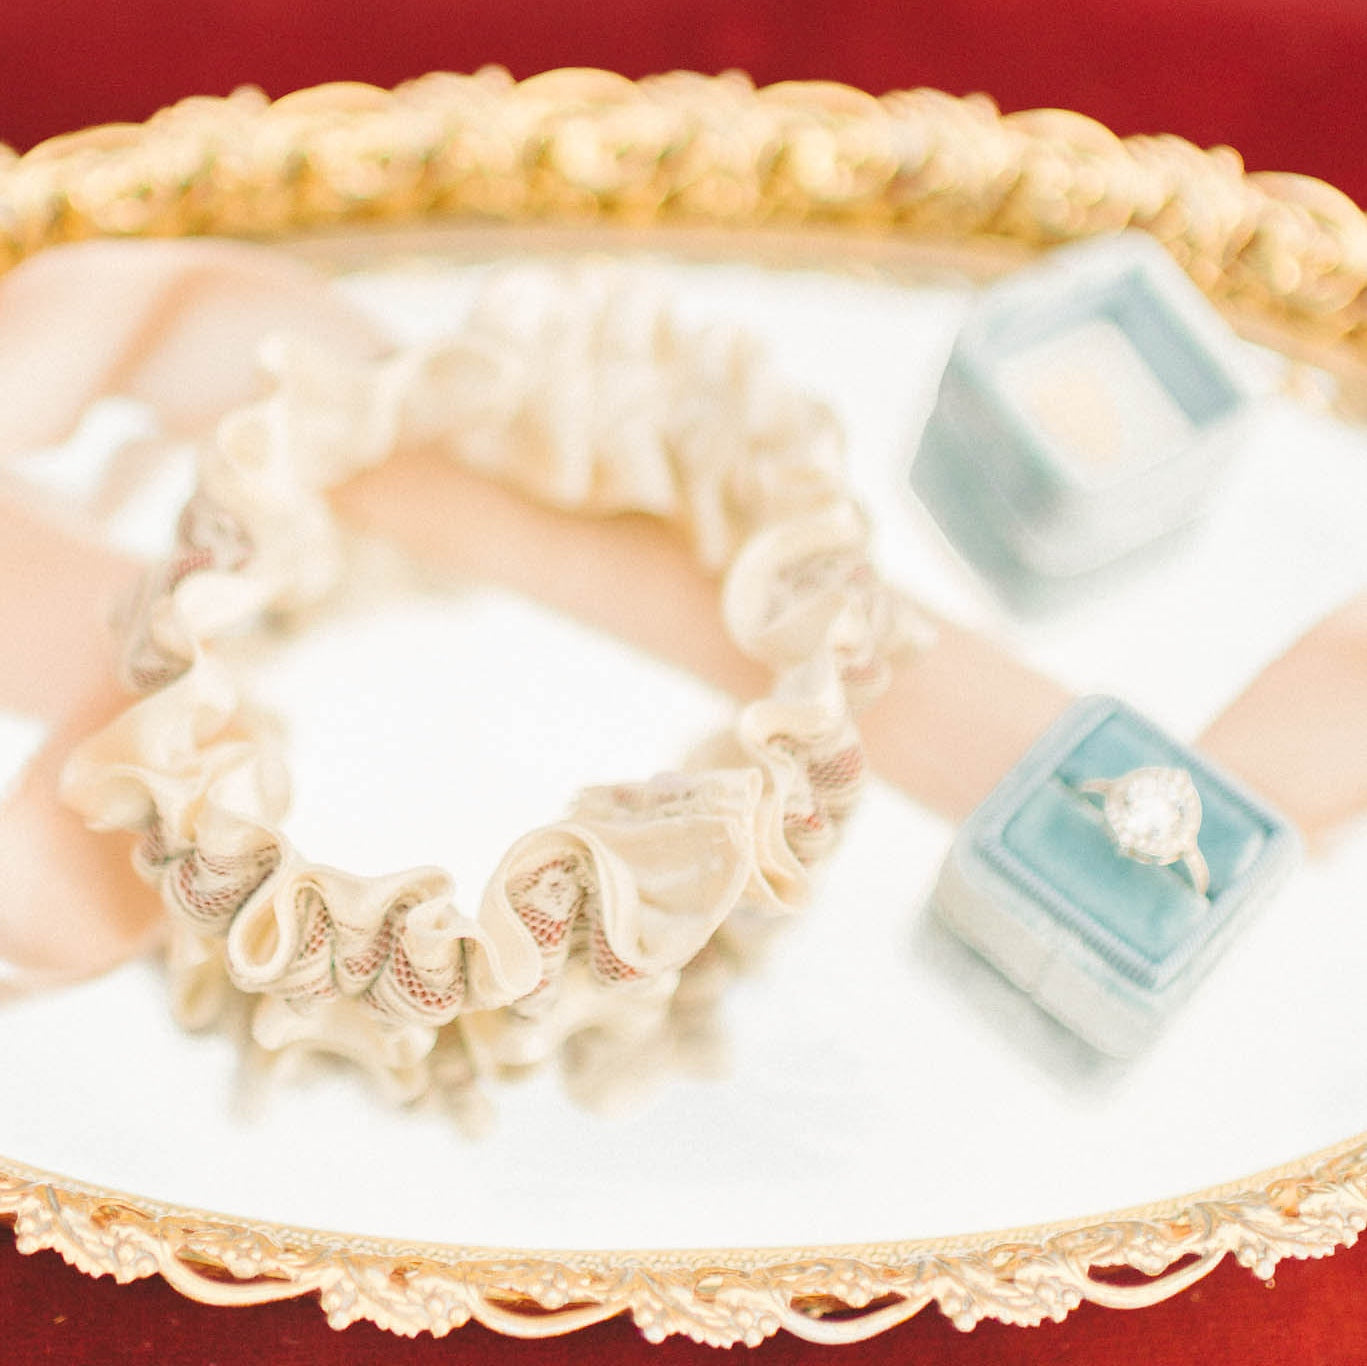 couture lace wedding garter by The Garter Girl